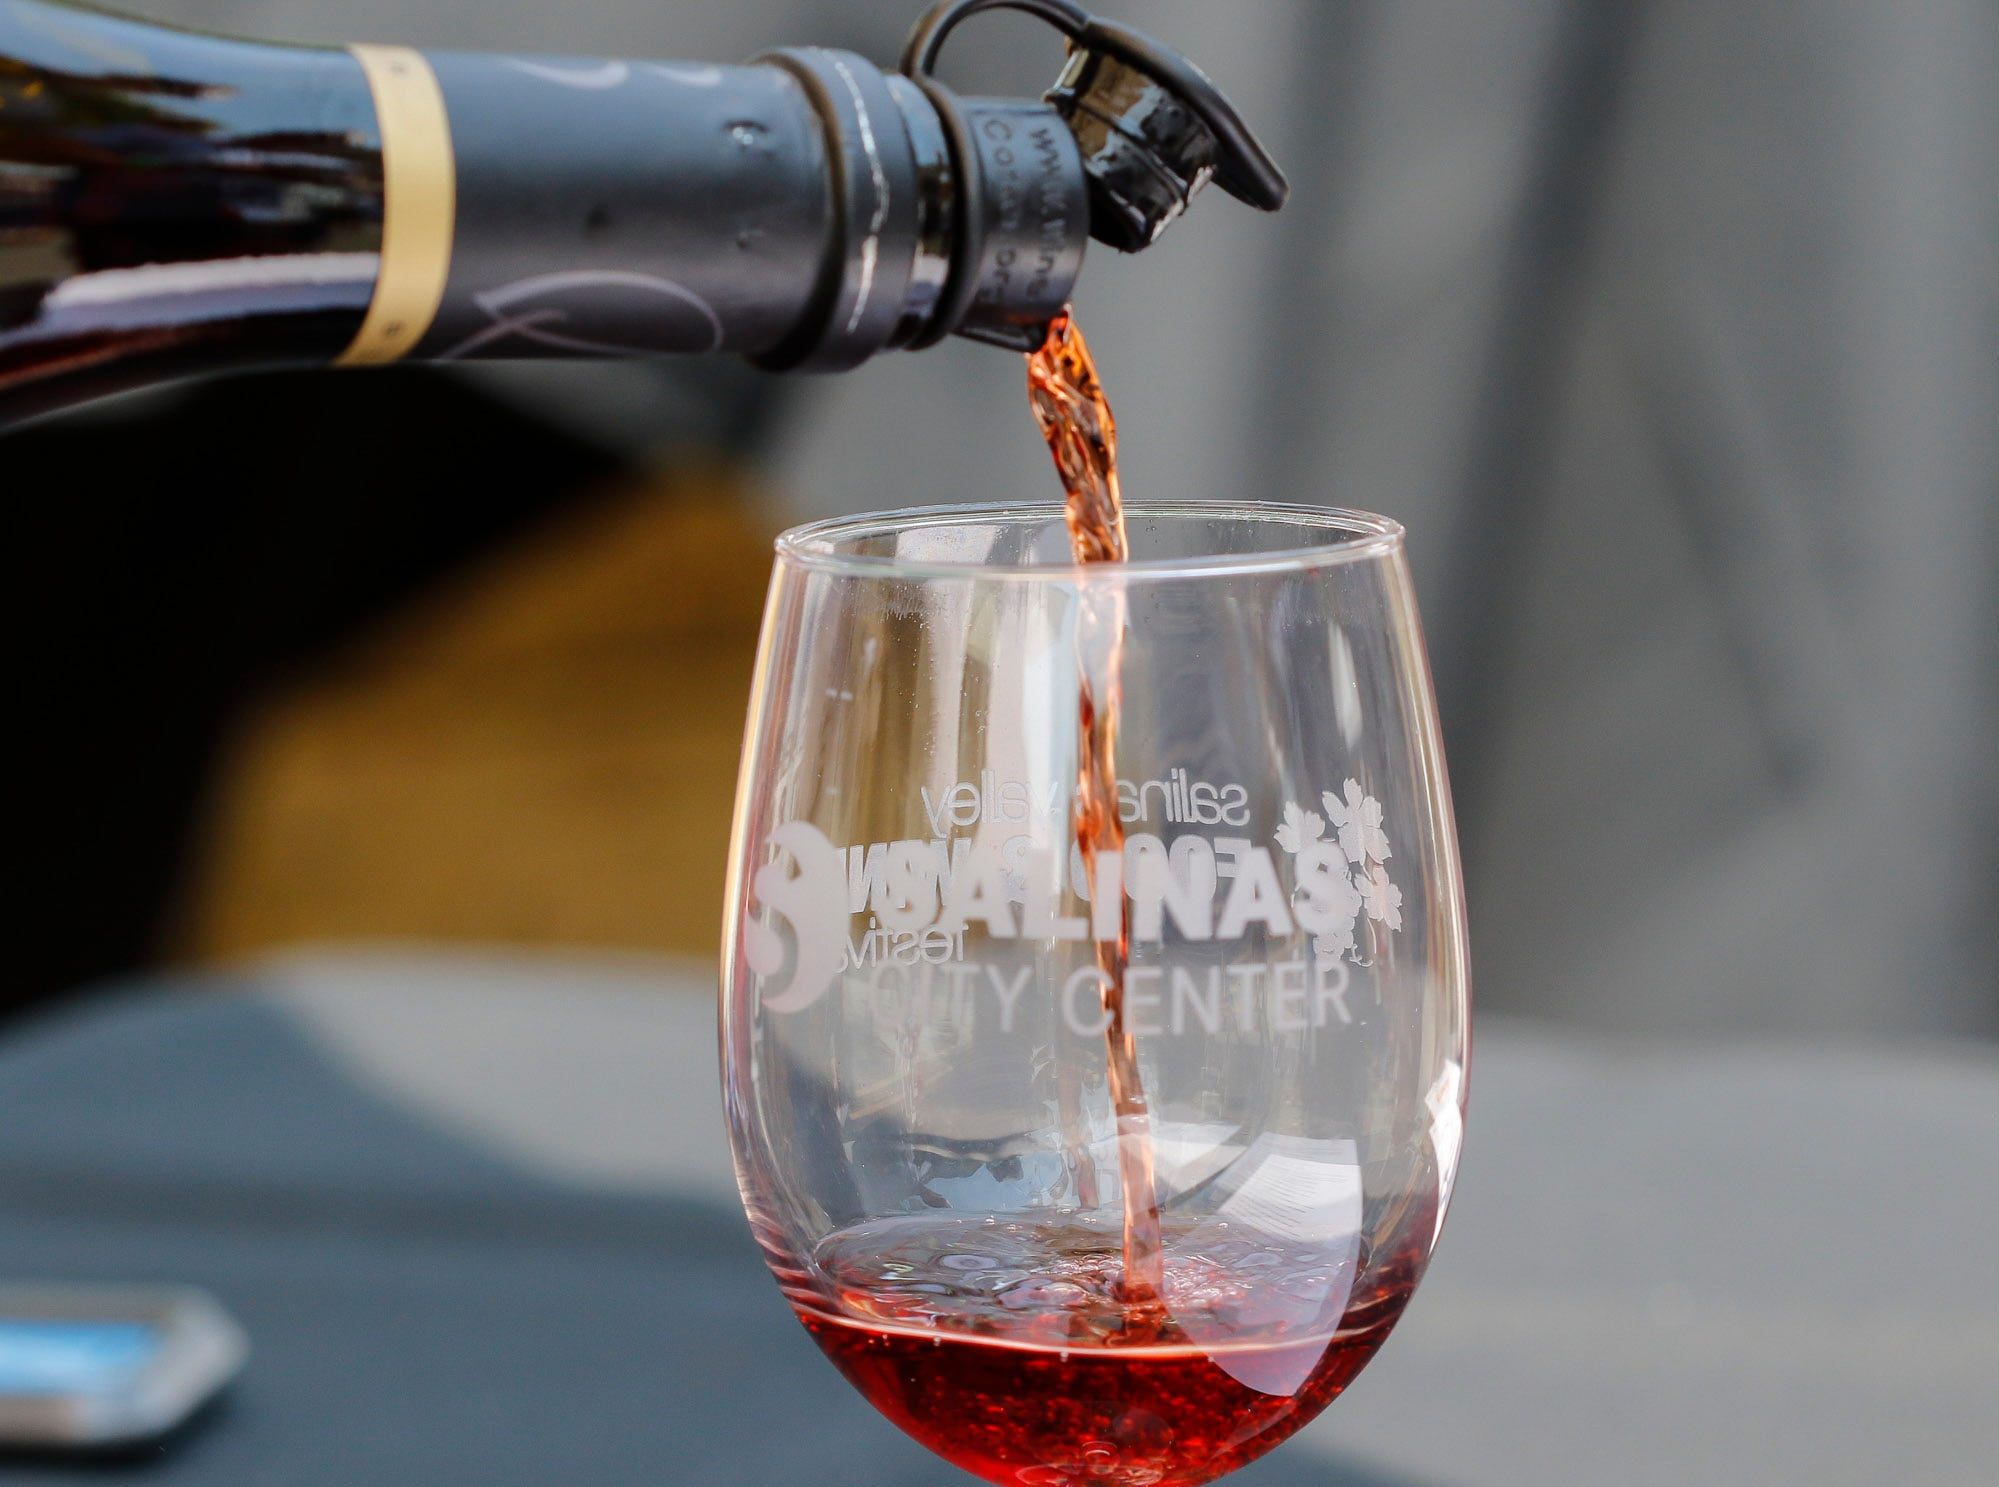 Vintners sample their wine during the 2018 Salinas Valley Food and Wine Festival which takes place on Main Street in Old Town Salinas on Saturday, August 11, 2018.